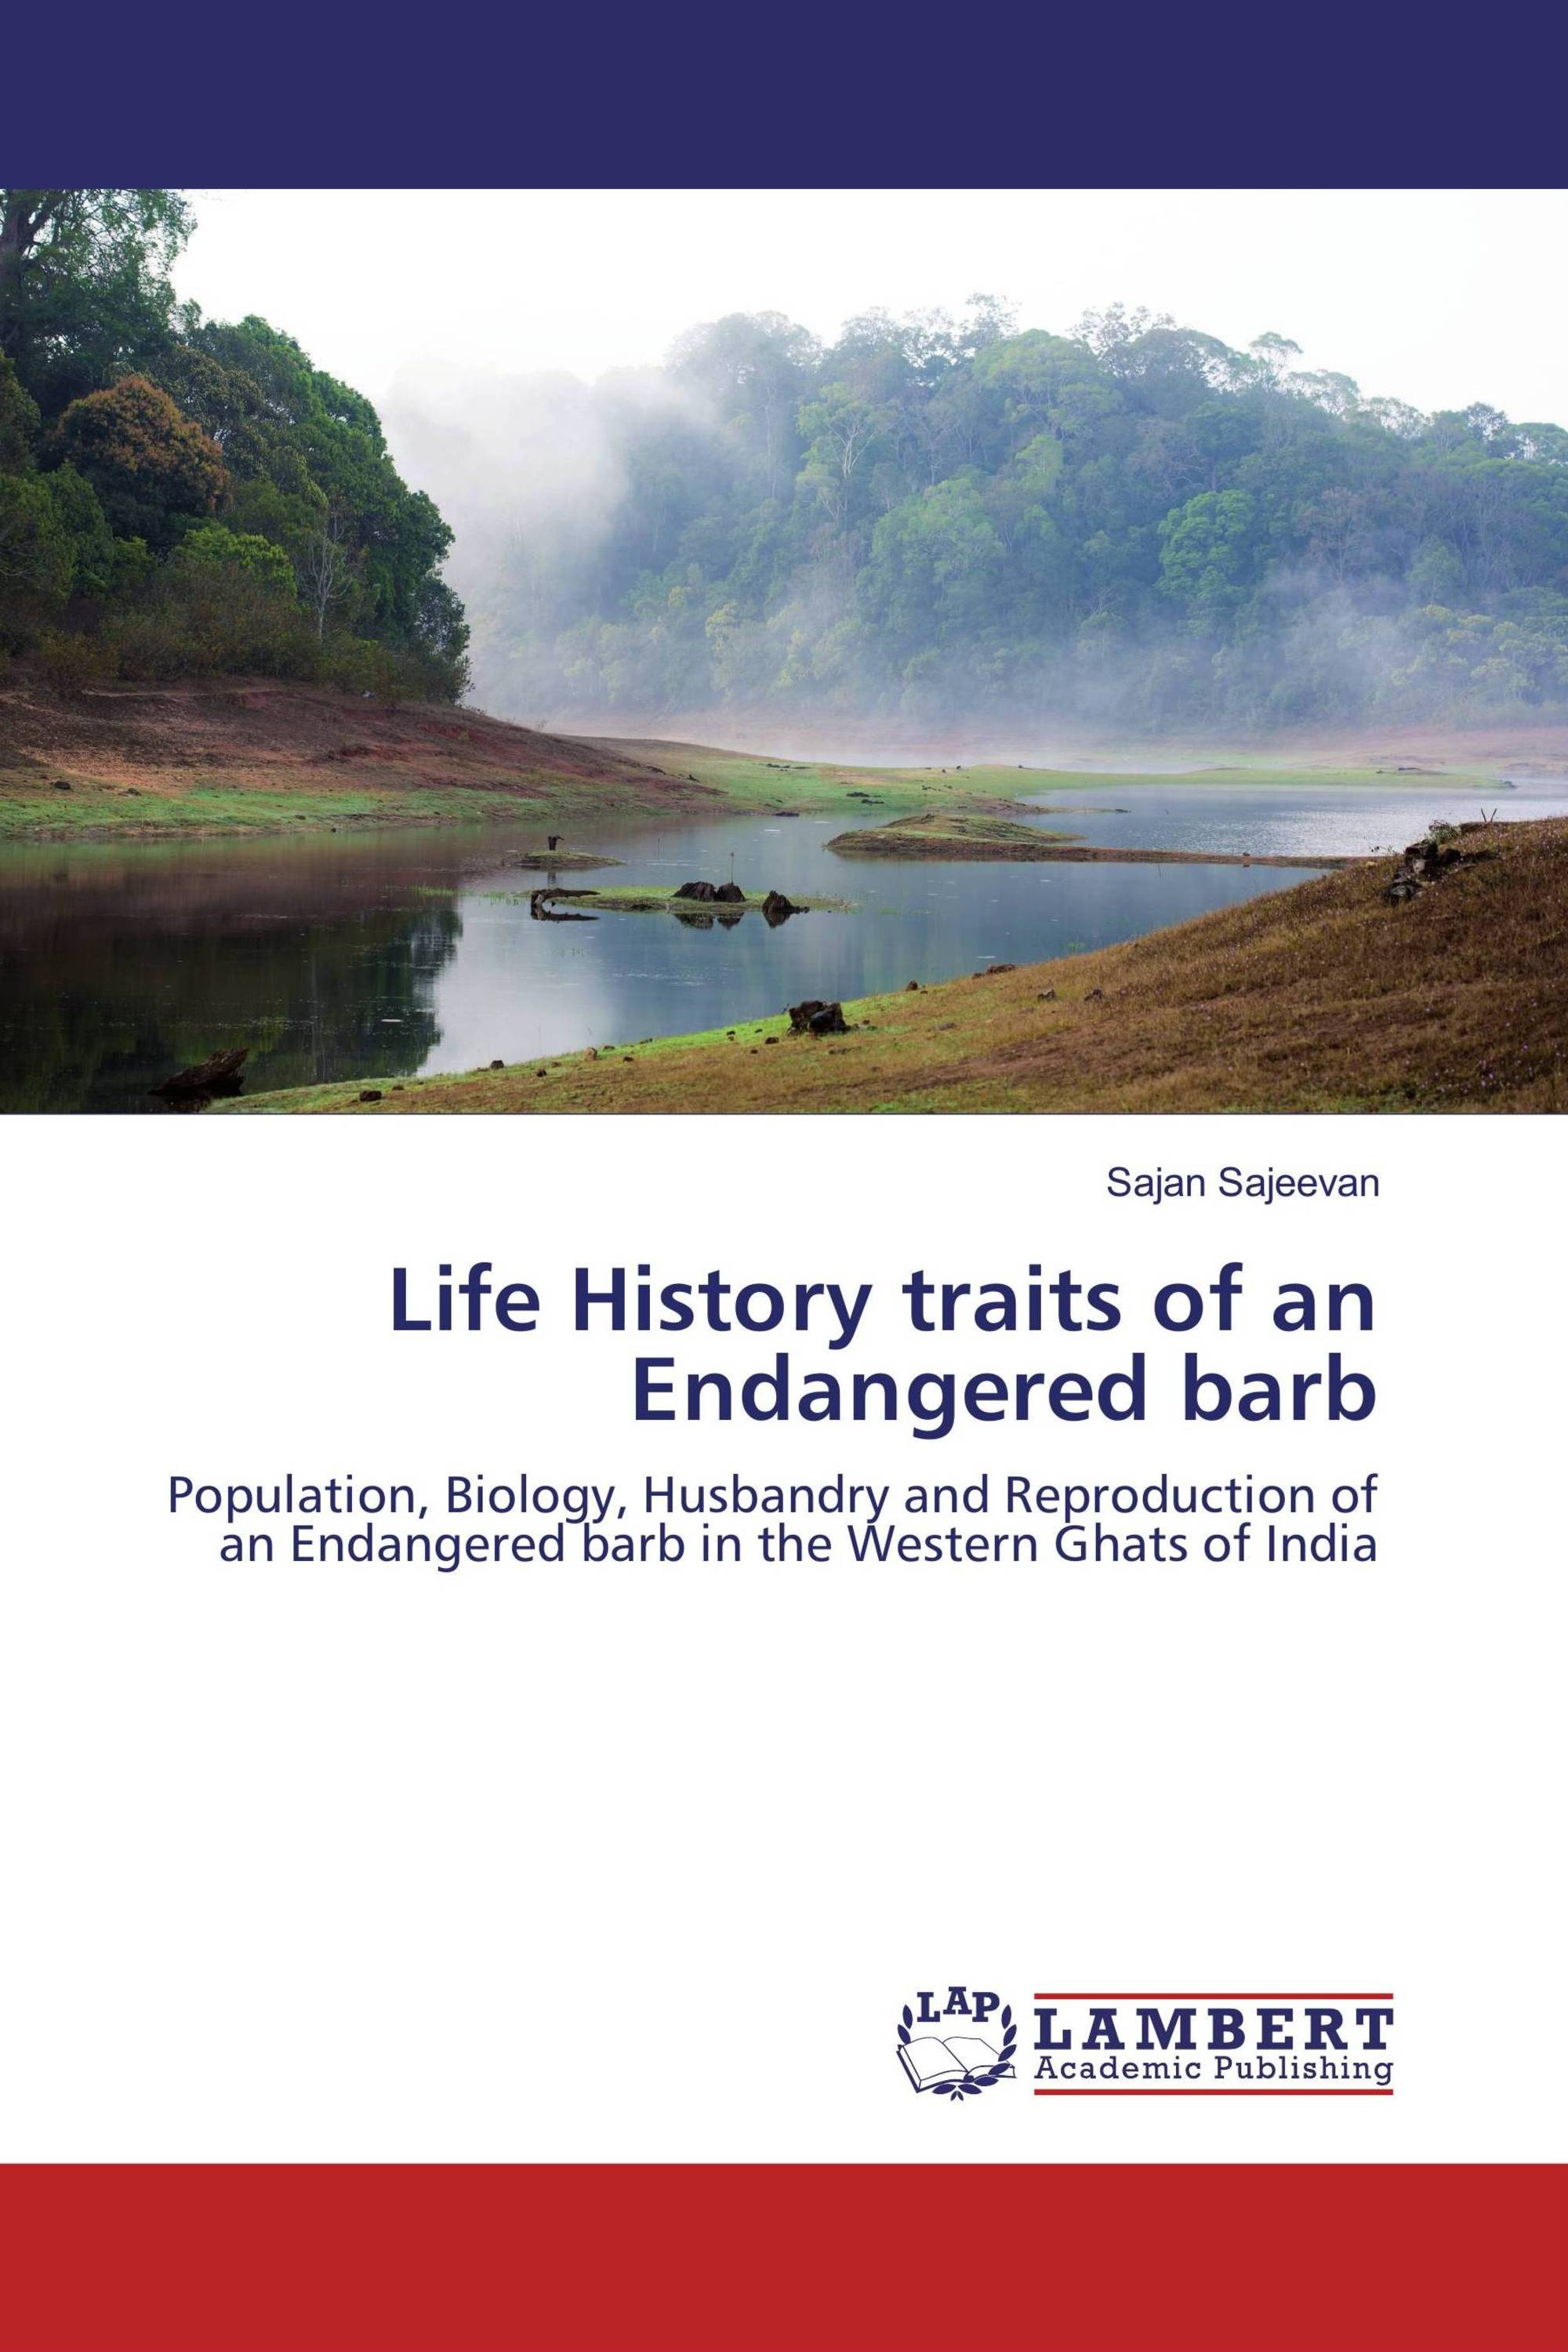 Life History traits of an Endangered barb